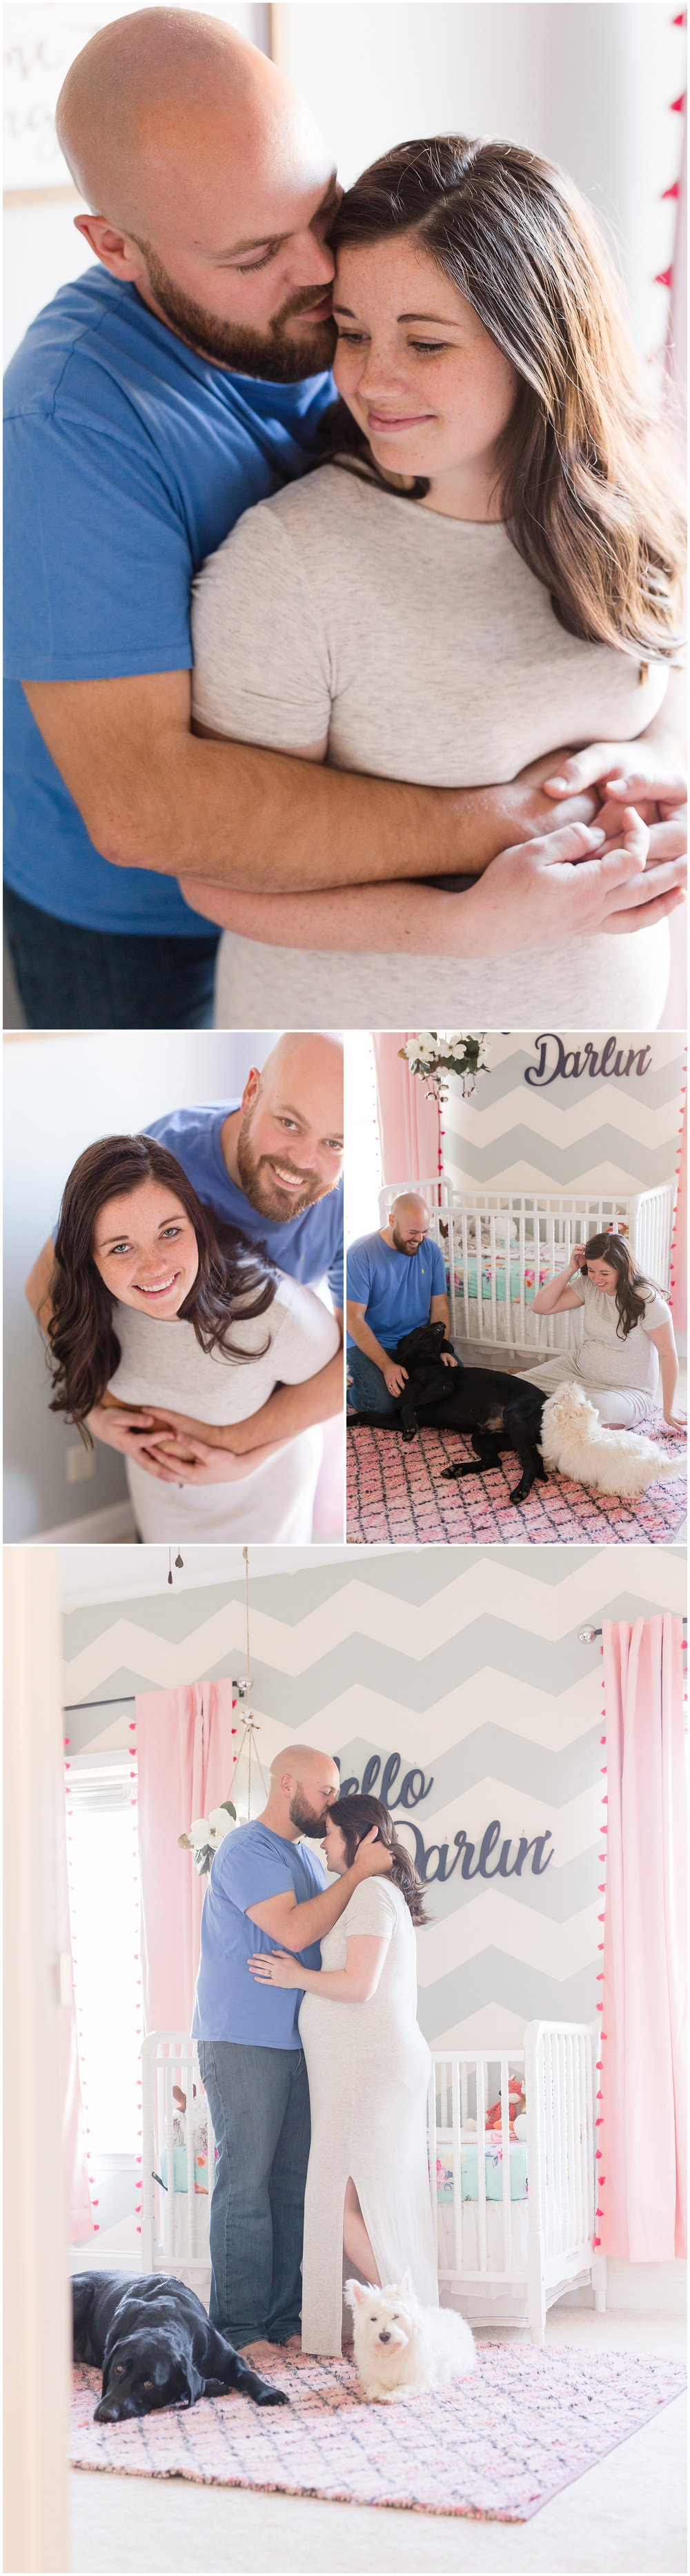 Lifestyle maternity photos at home in South Carolina